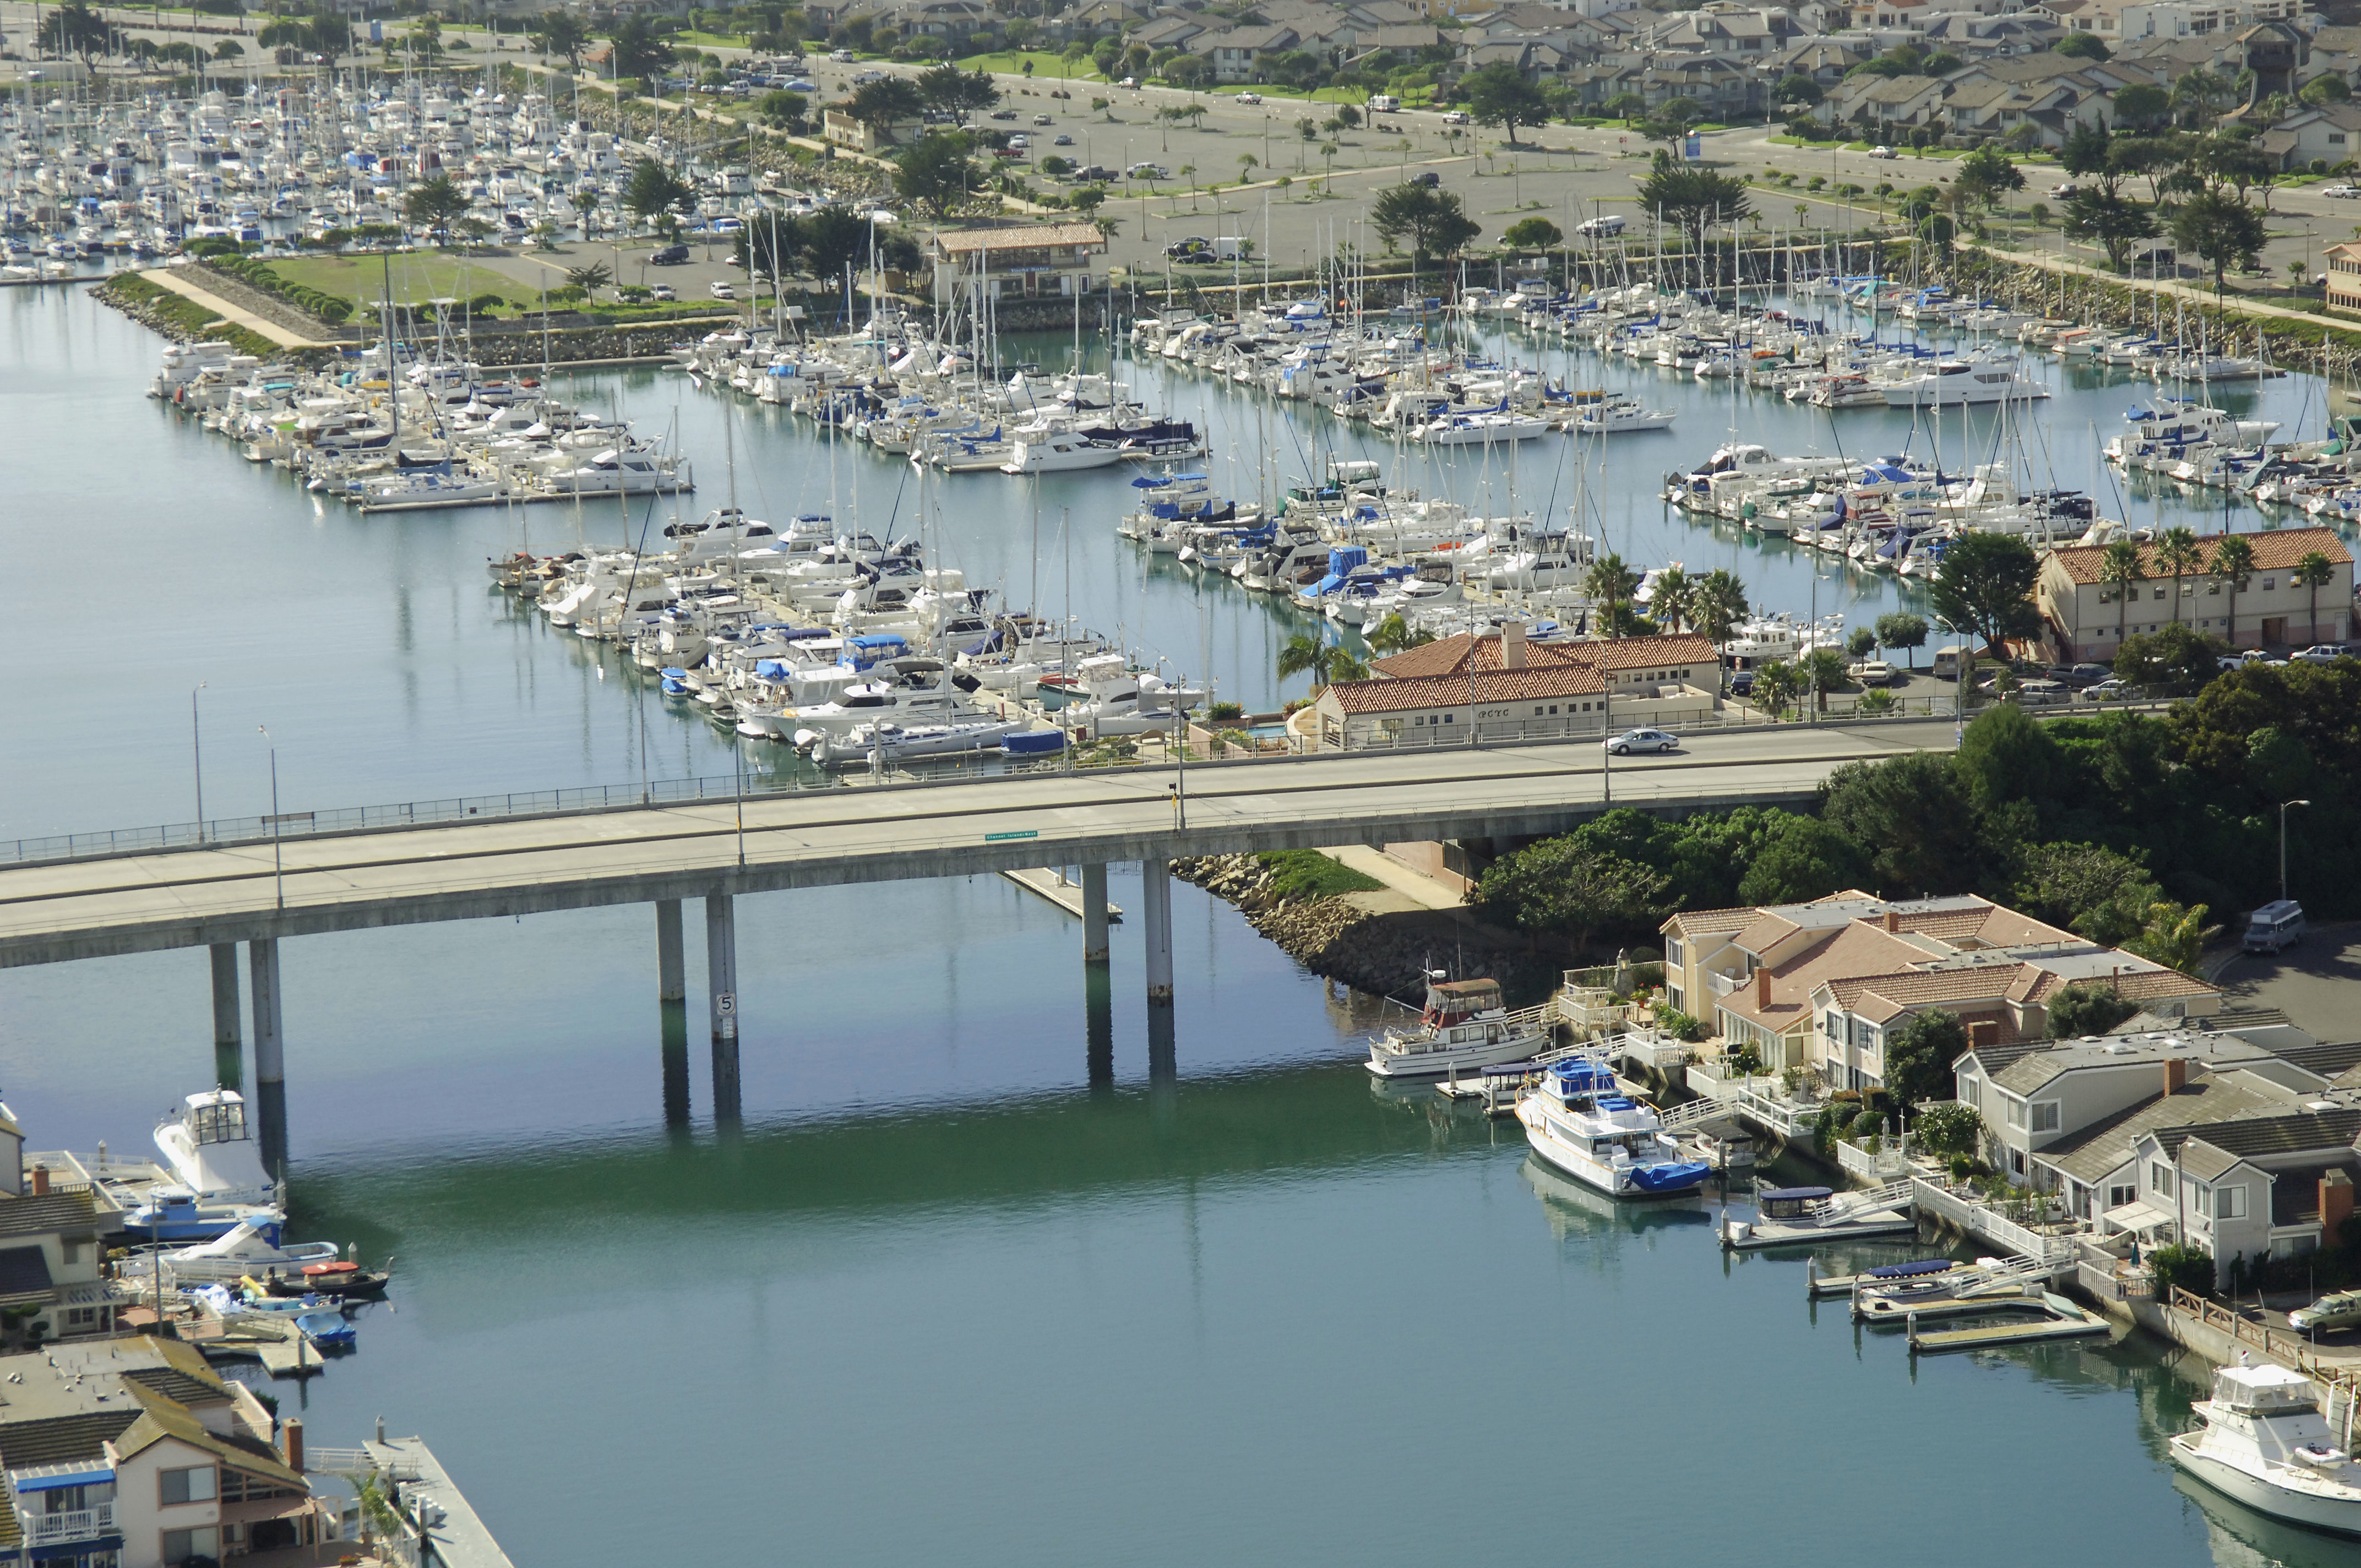 Pacific Corinthian Yacht Club In Channel Islands Harbor